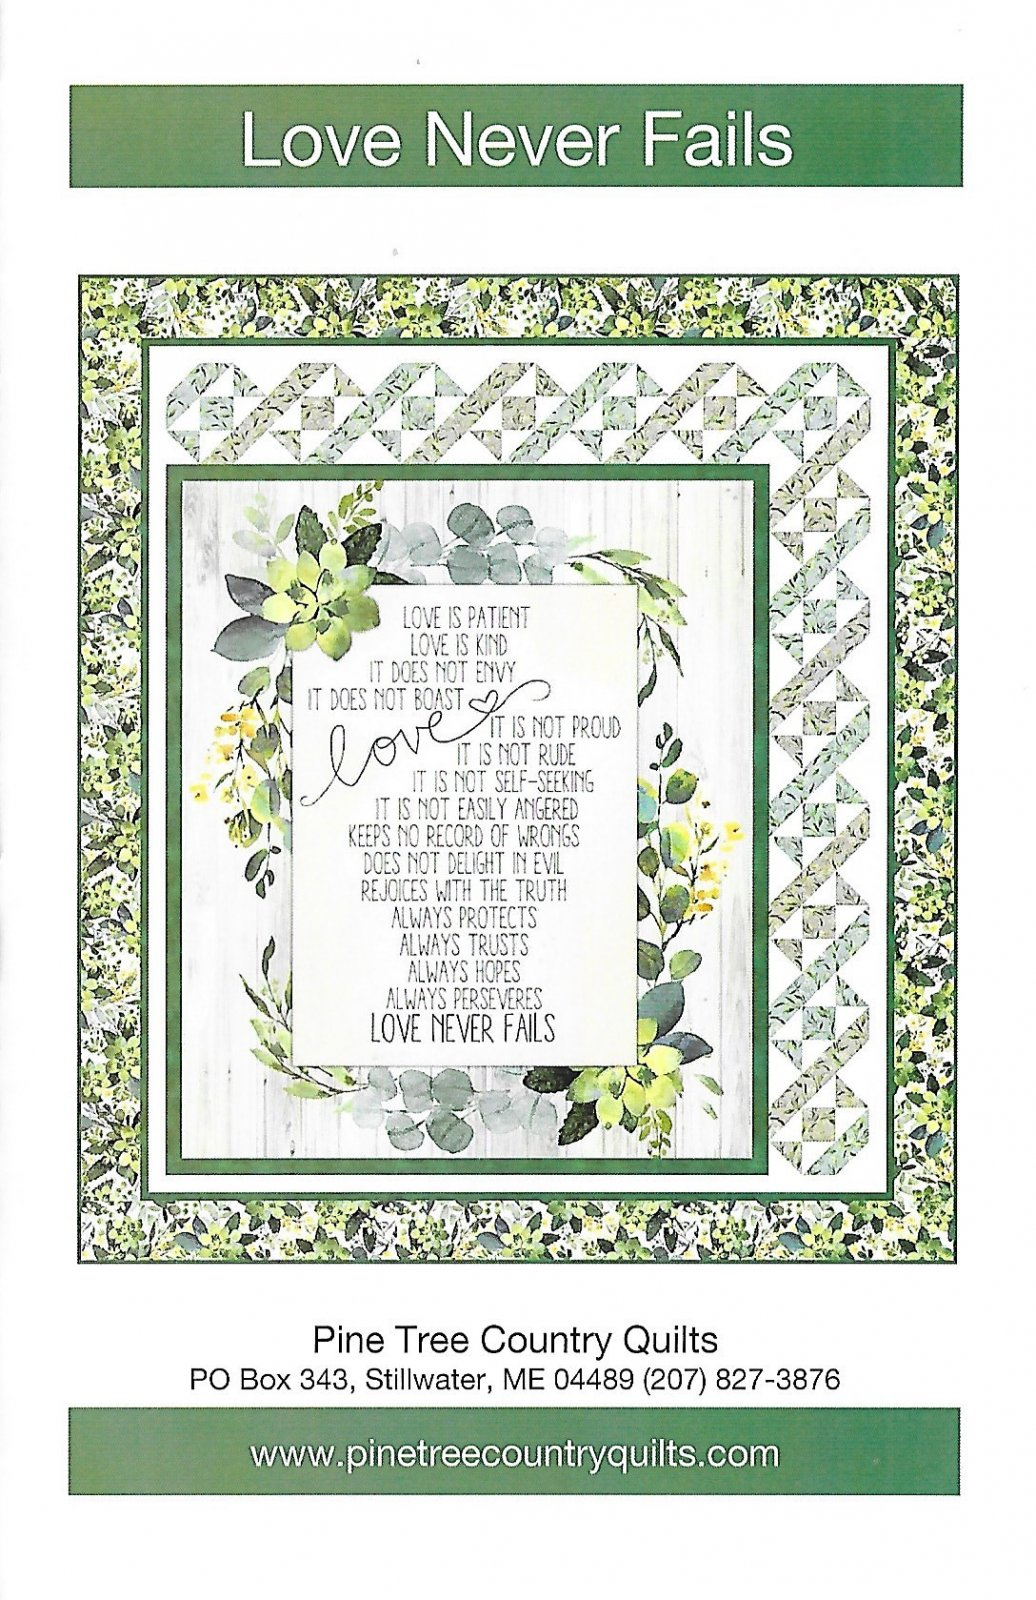 Love Never Fails Wall hanging kit